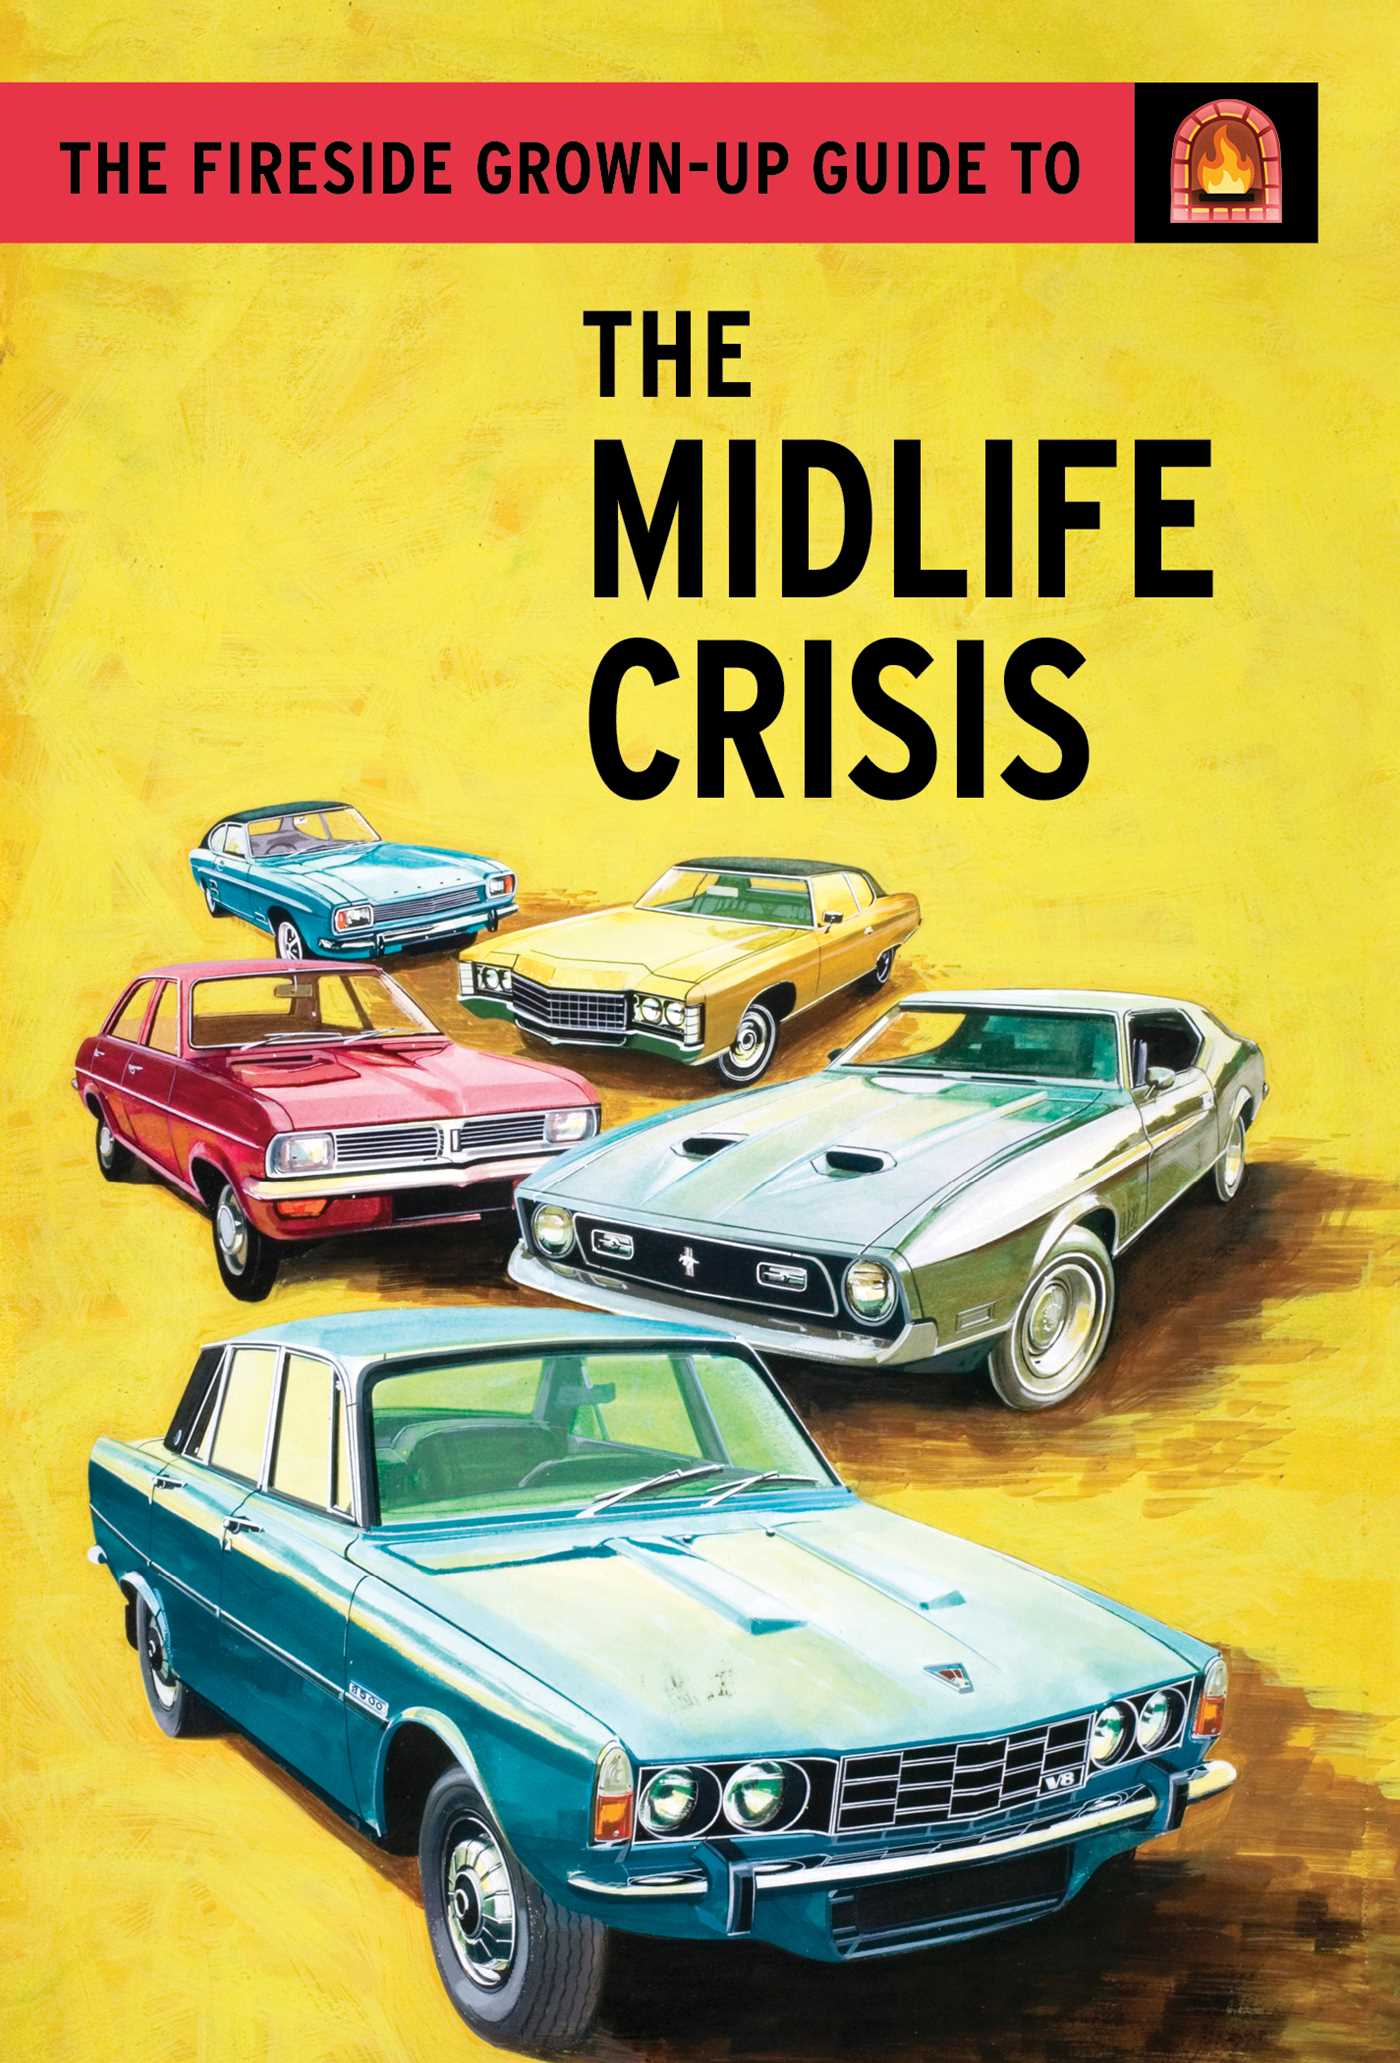 The fireside grown up guide to the midlife crisis 9781501152832 hr